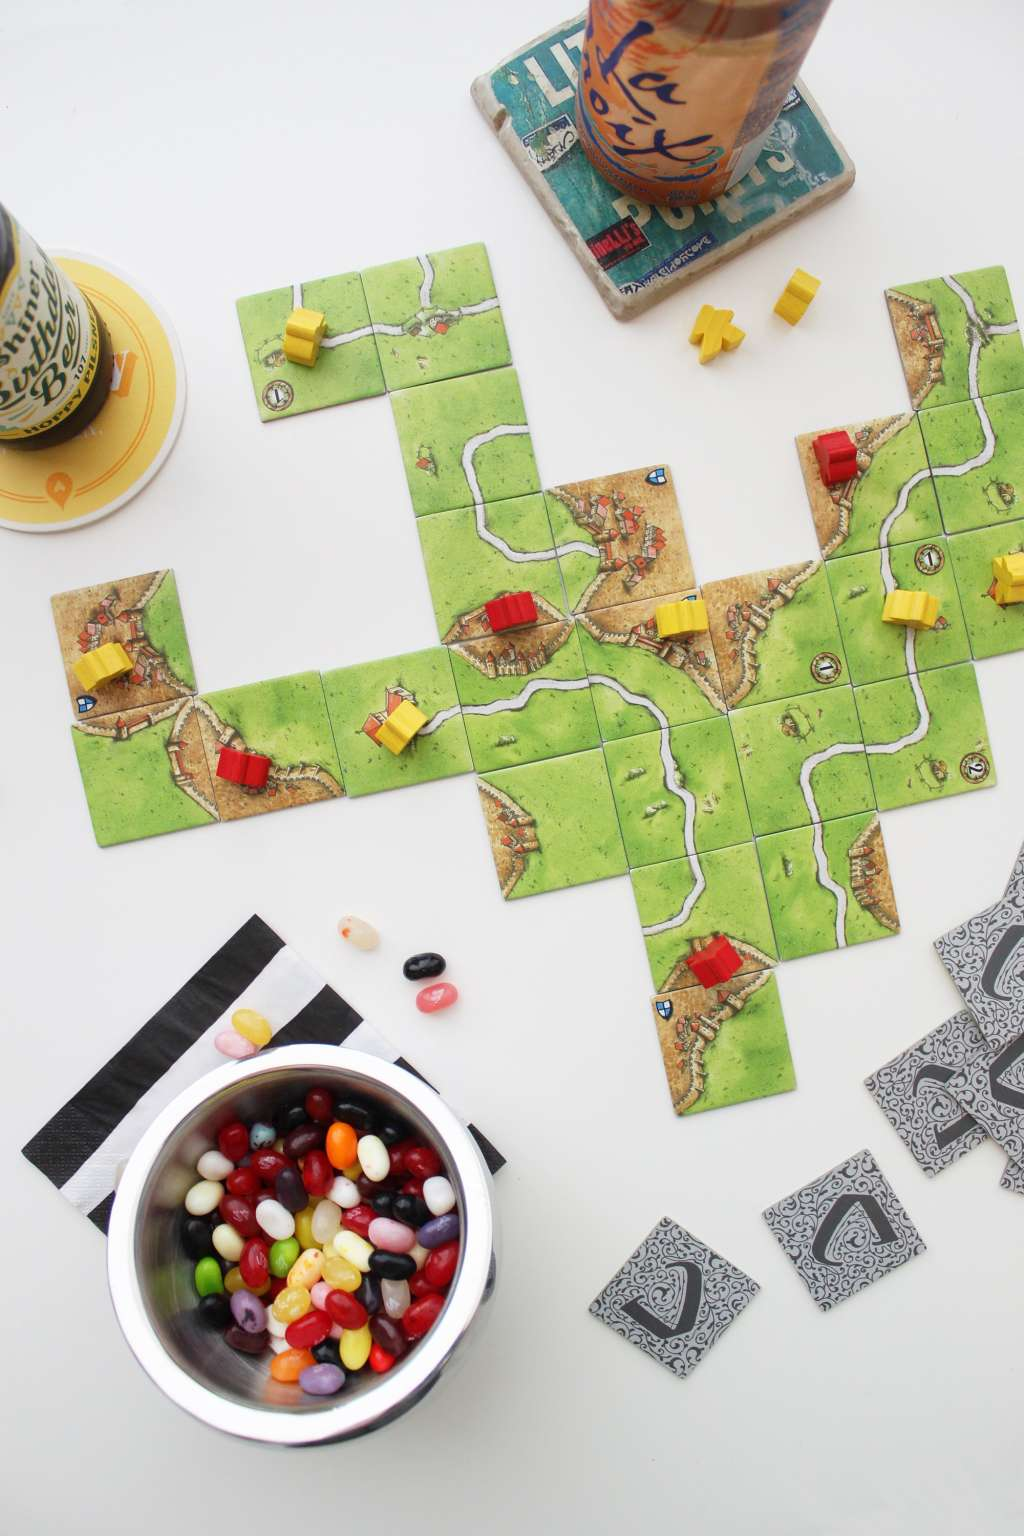 The Best 2-Player Board Games to Play at Home